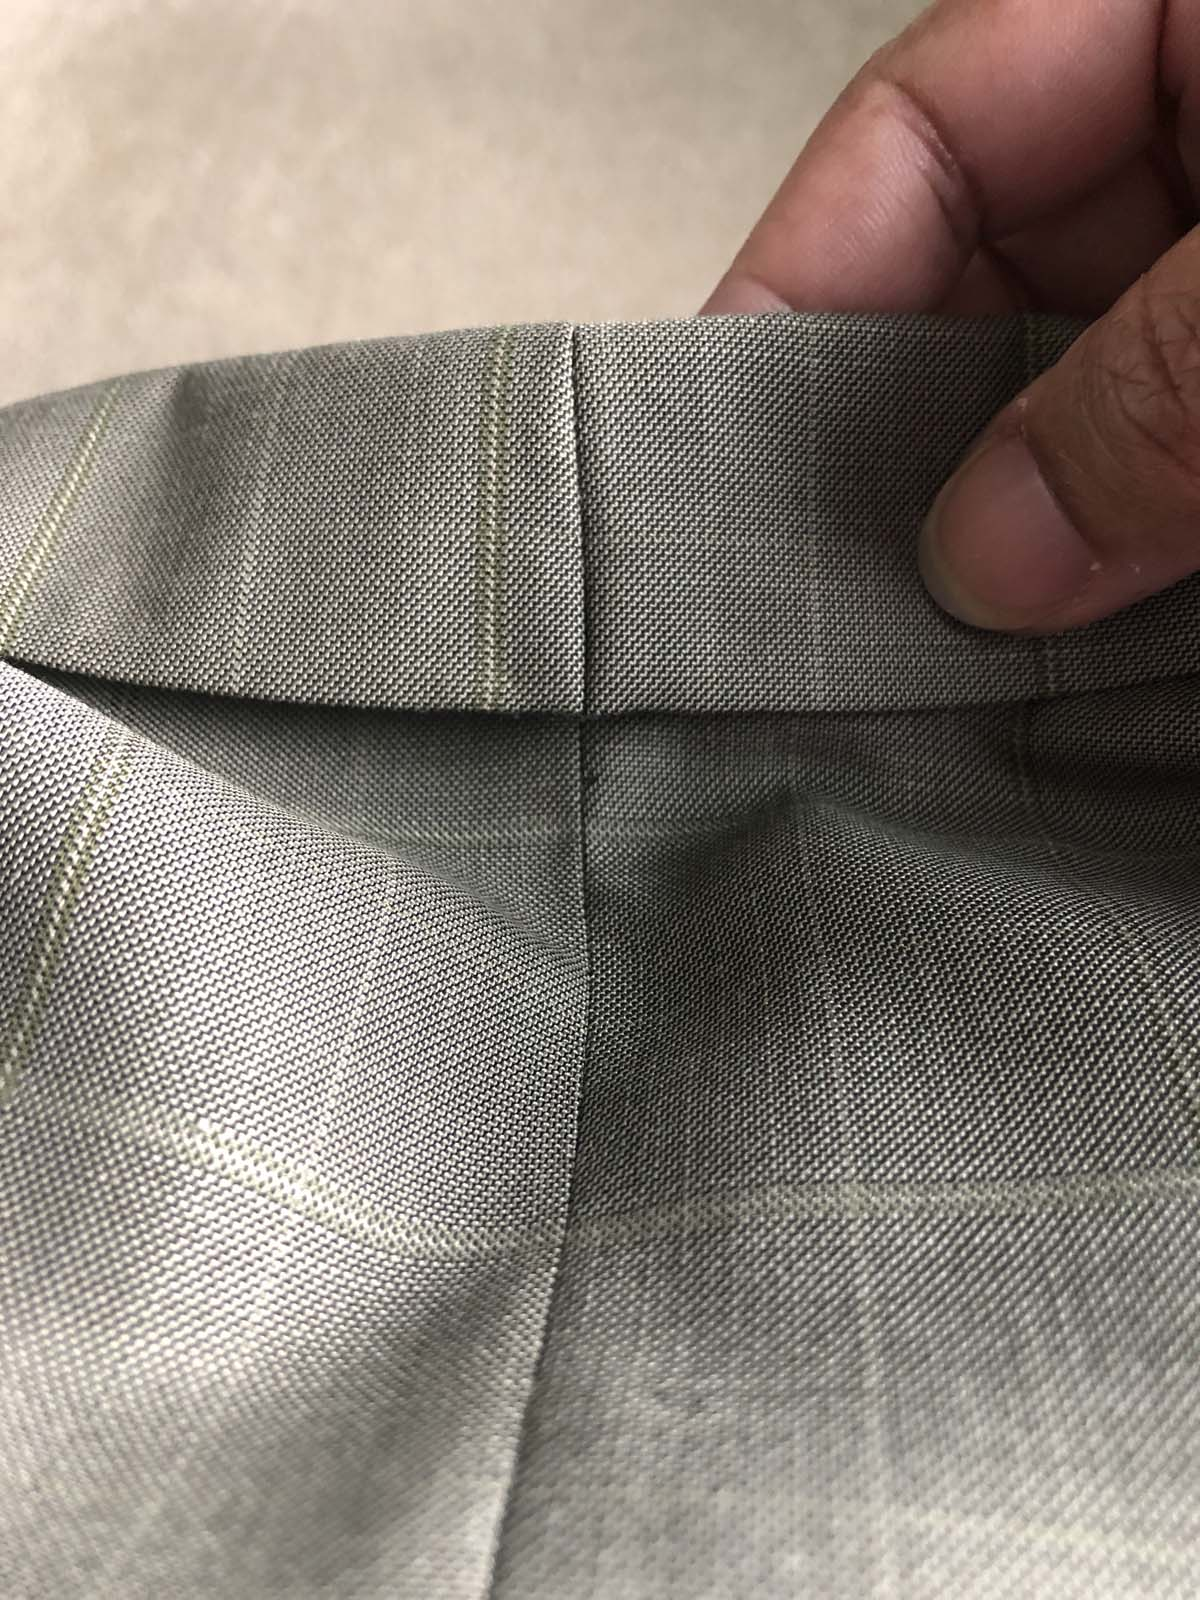 Upper collar of the men's suit jacket is taken in, shown from the right side